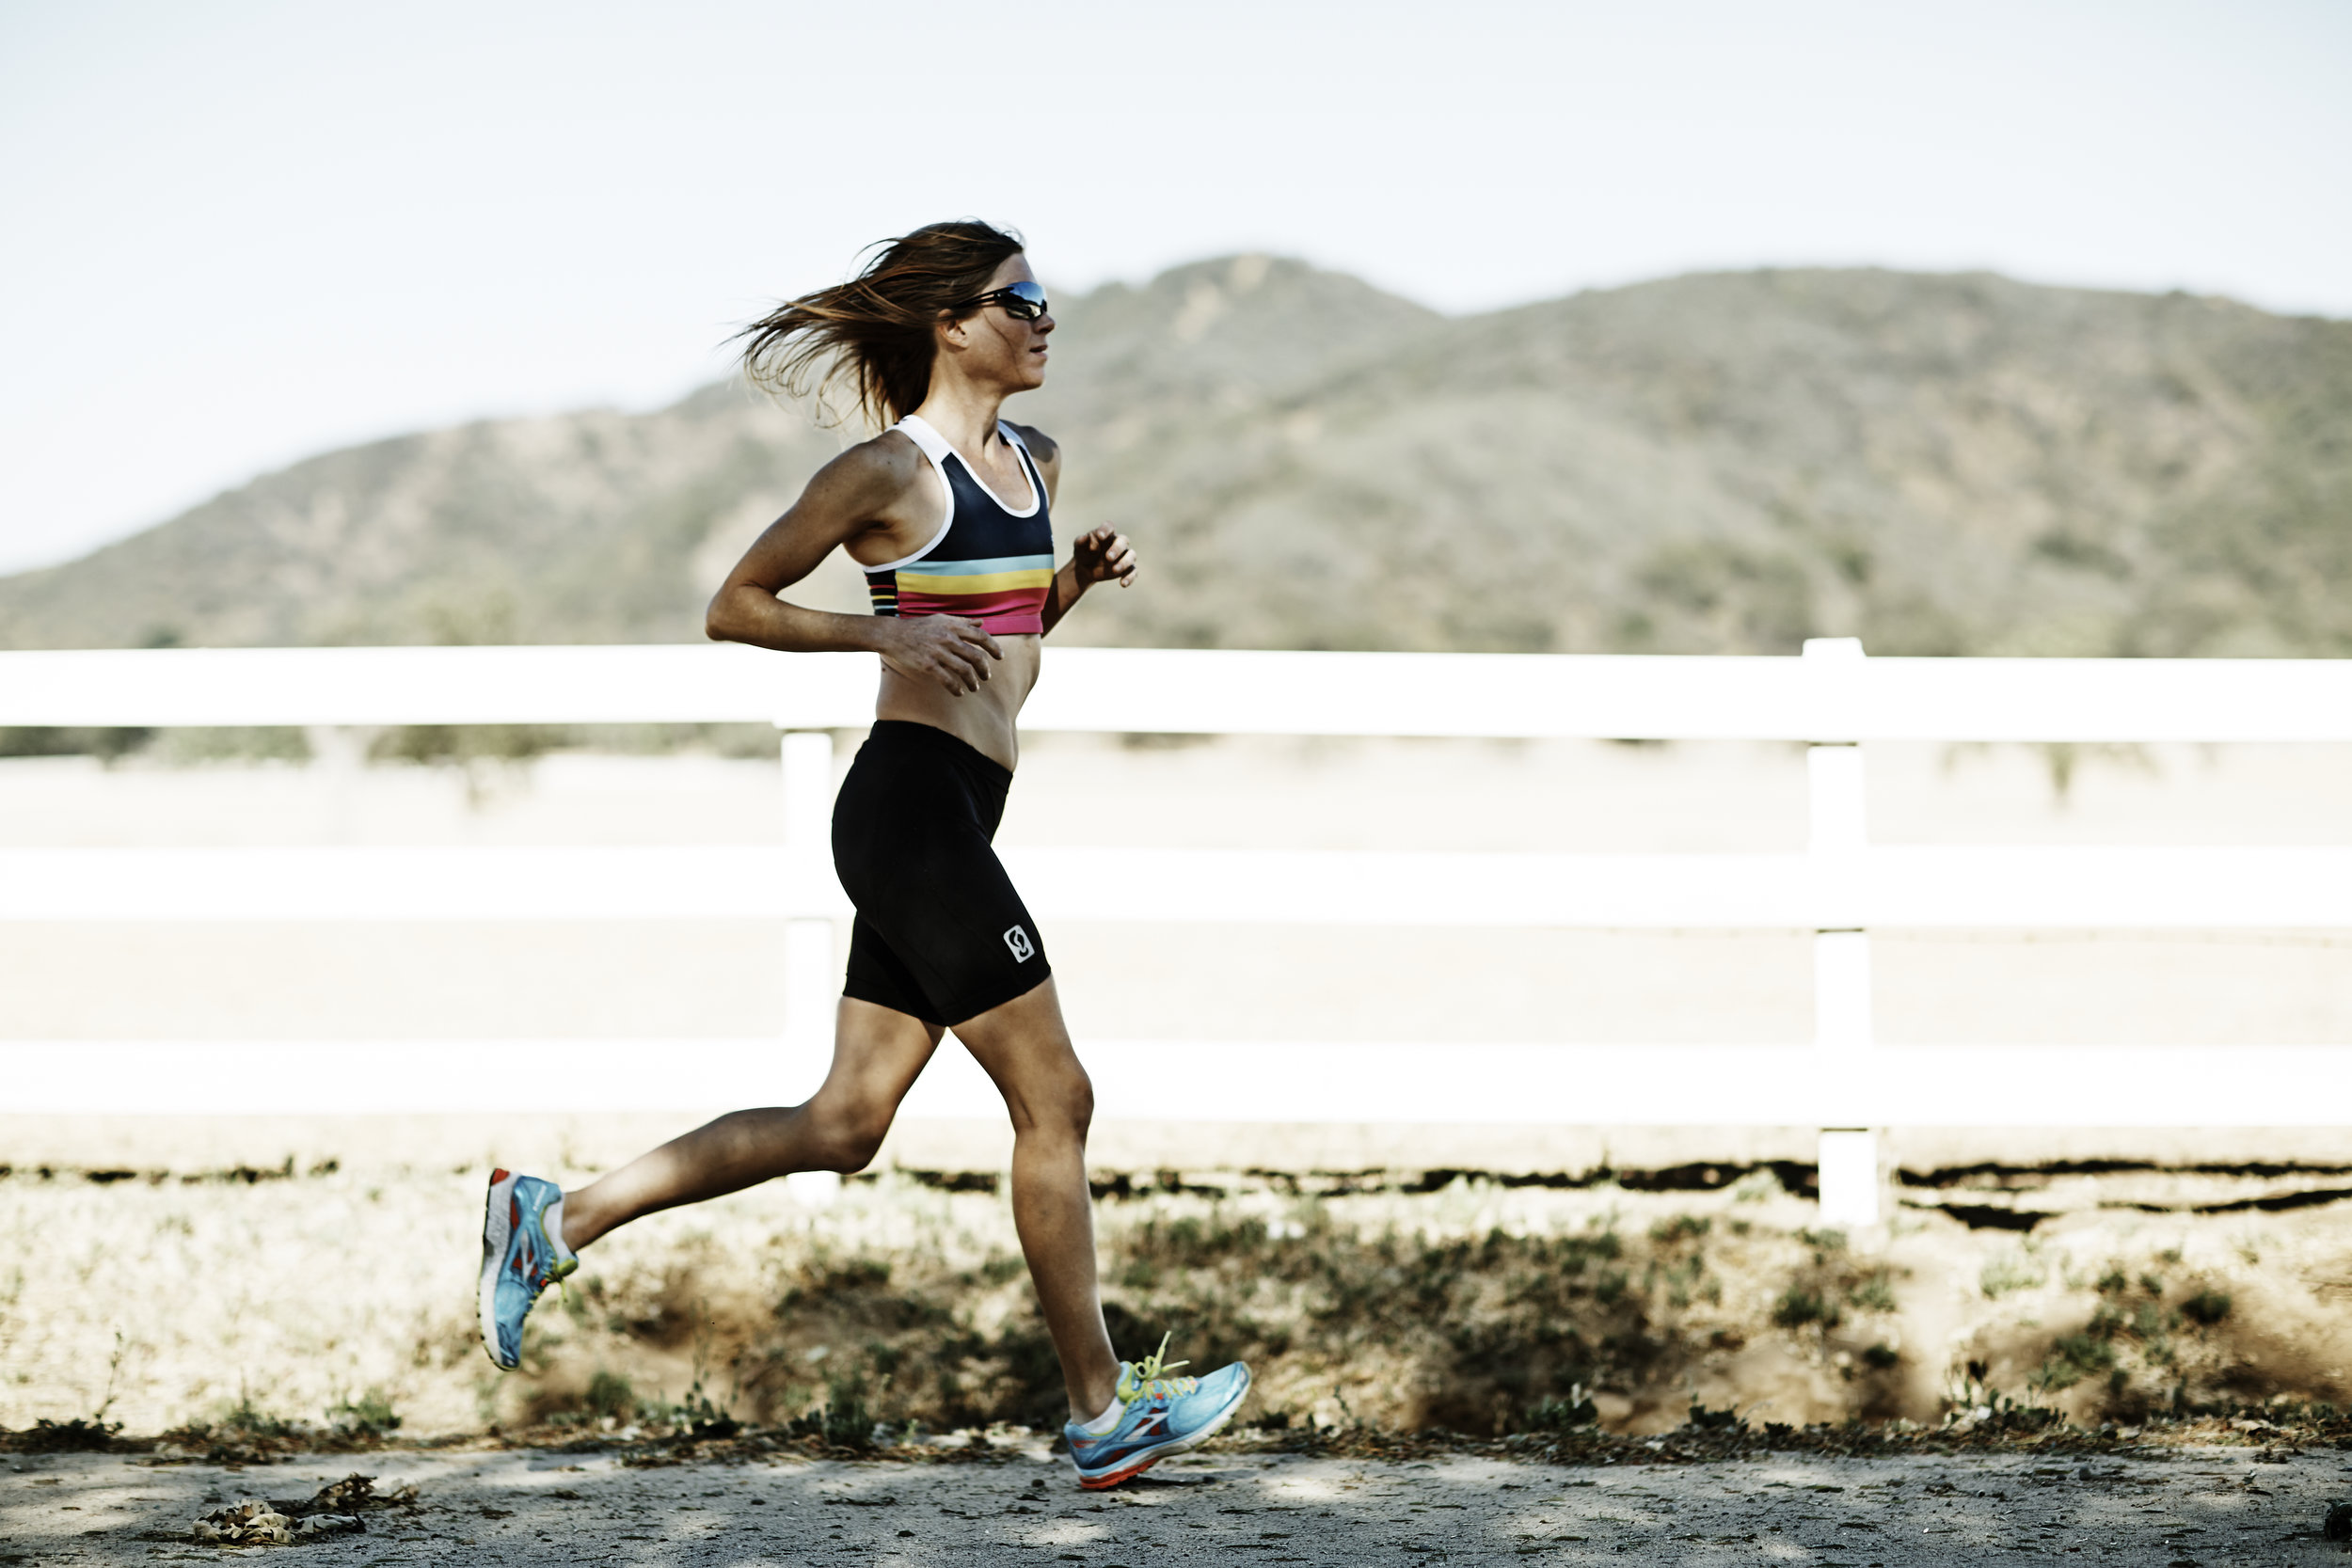 Jennifer Rau - I fell in love with running late, in my 20s when the competitive equestrian sports my parents had supported were too expensive for me to support on my own. It was a stressful time in my life and running was an instant stress reliever/. It wasn't until my 30s when I took on the sports of triathlon and ultra running and began racing that I discovered sports nutrition. I would cycle 50 miles with only water and get so sore I couldn't workout the next day. Friends in my triathlon group taught me how to fuel during rides and runs and how to eat for recovery after. Fueling right made all the difference! It gave me the energy to complete my long workouts, recover quickly and have energy to get up and do it again the next day and eventually powered me to my first Ironman and multiple ultra distances running races.My passion for endurance sports had already led me to pursue two coaching certifications, NASM CPT and Ironman University, but coaching an athlete without proper nutrition was frustrating. Nutrition was the secret weapon for me as a triathlete, runner and rock climber. It felt like the missing piece for my athletes. This led me to pursue a Masters in Applied Exercise and Sports Nutrition and become a certified sports nutritionist CISSN through the The International Society of Sports Nutrition.I am a passionate about the outdoors, adventure and an active lifestyle. I get an abundance of joy, peace, confidence and strength from my well fueled athletic pursuits and hope I can help you find the same. Don't just perform, meet your full potential and . . . thrive!